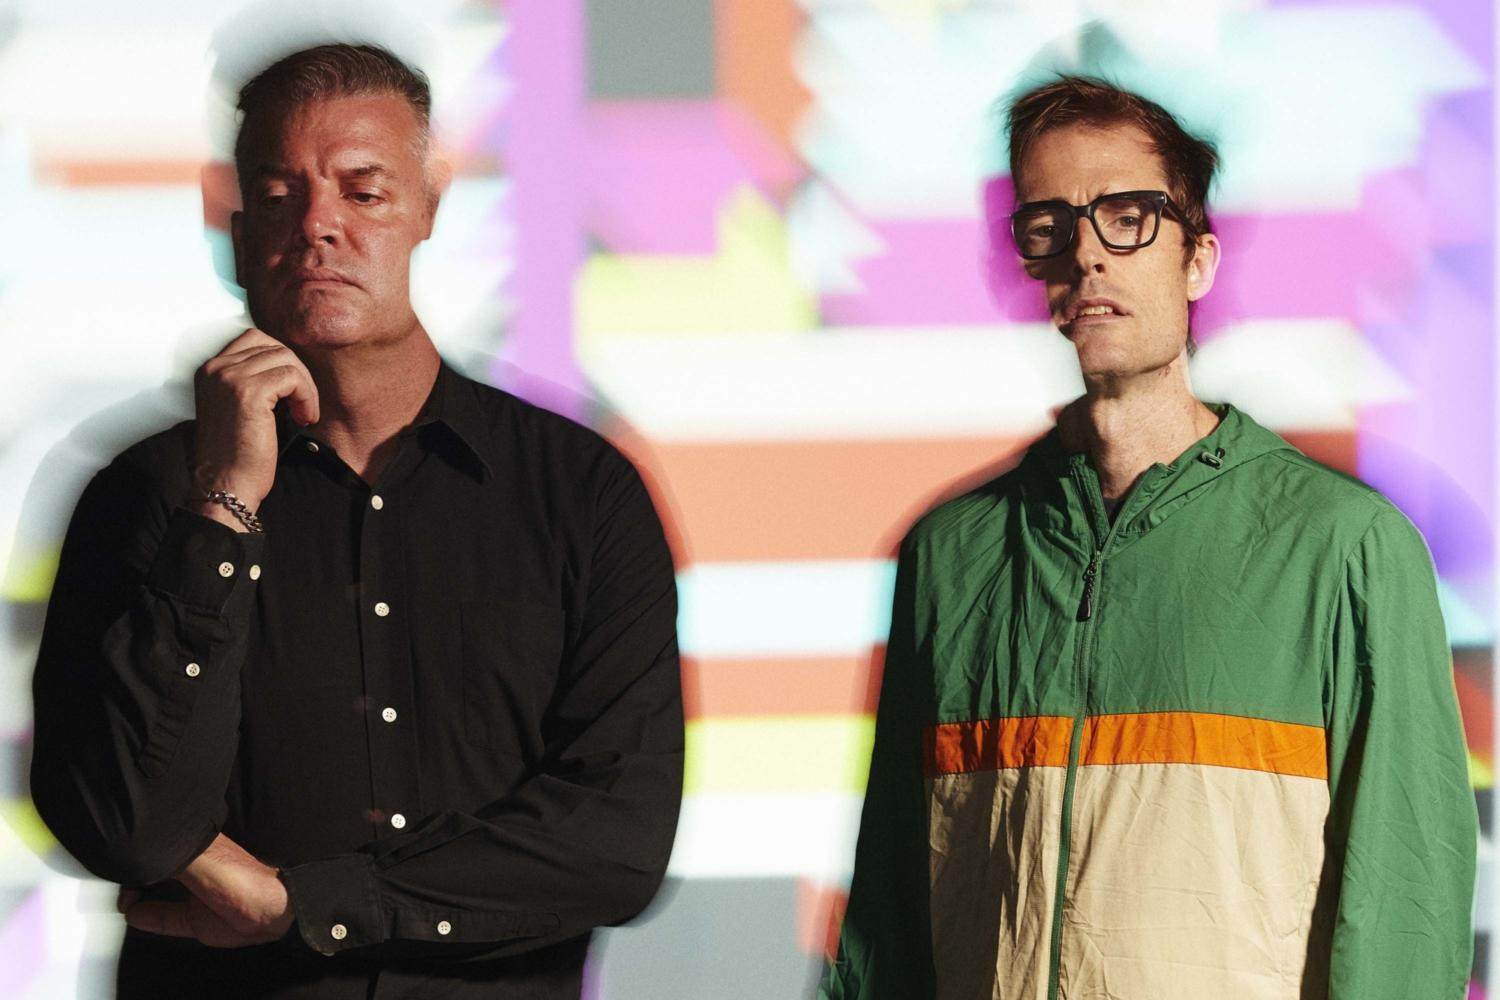 Battles experiment with some interesting modes of transport in 'Fort Greene Park' video